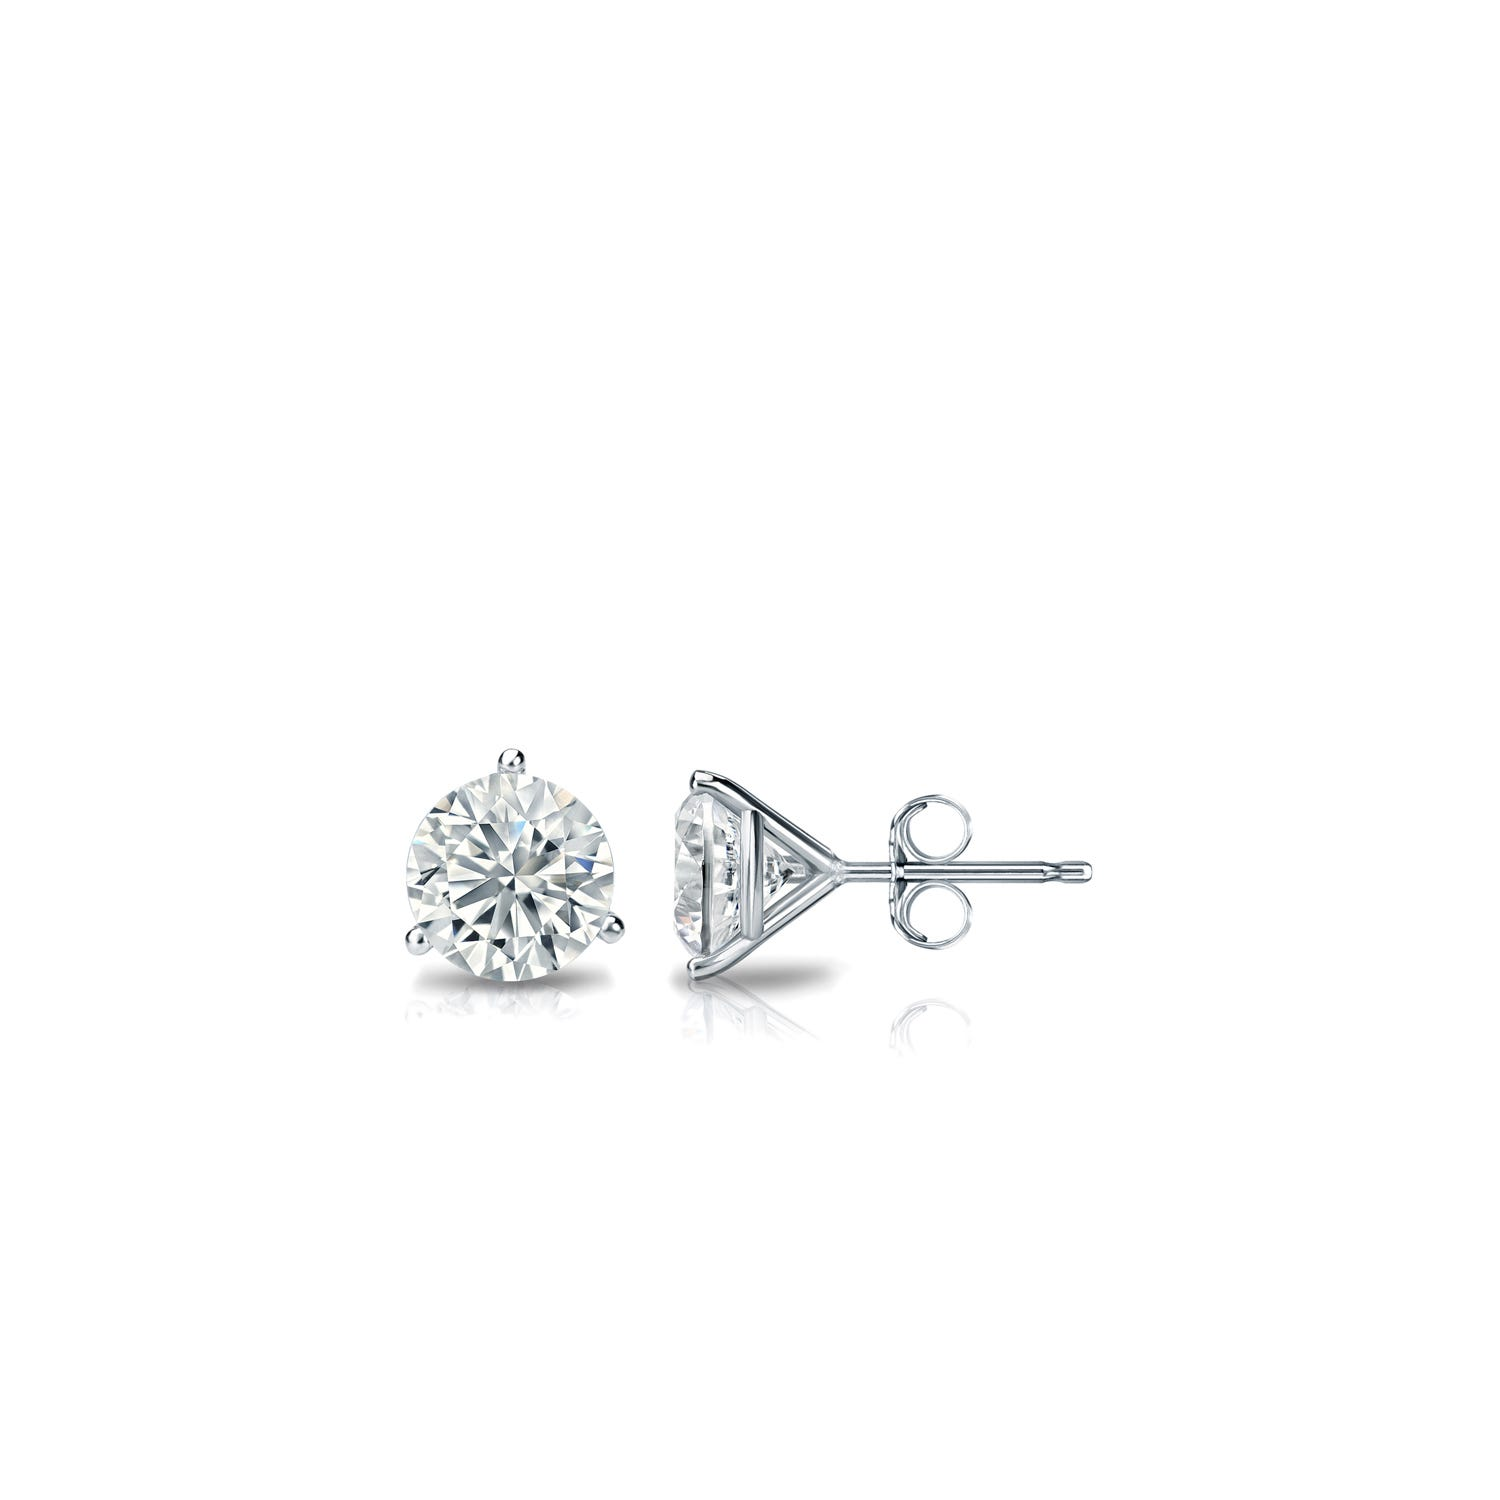 1/6 CTTW Round Diamond Solitaire Stud Earrings IJ VS2 in Platinum 3-Prong Setting